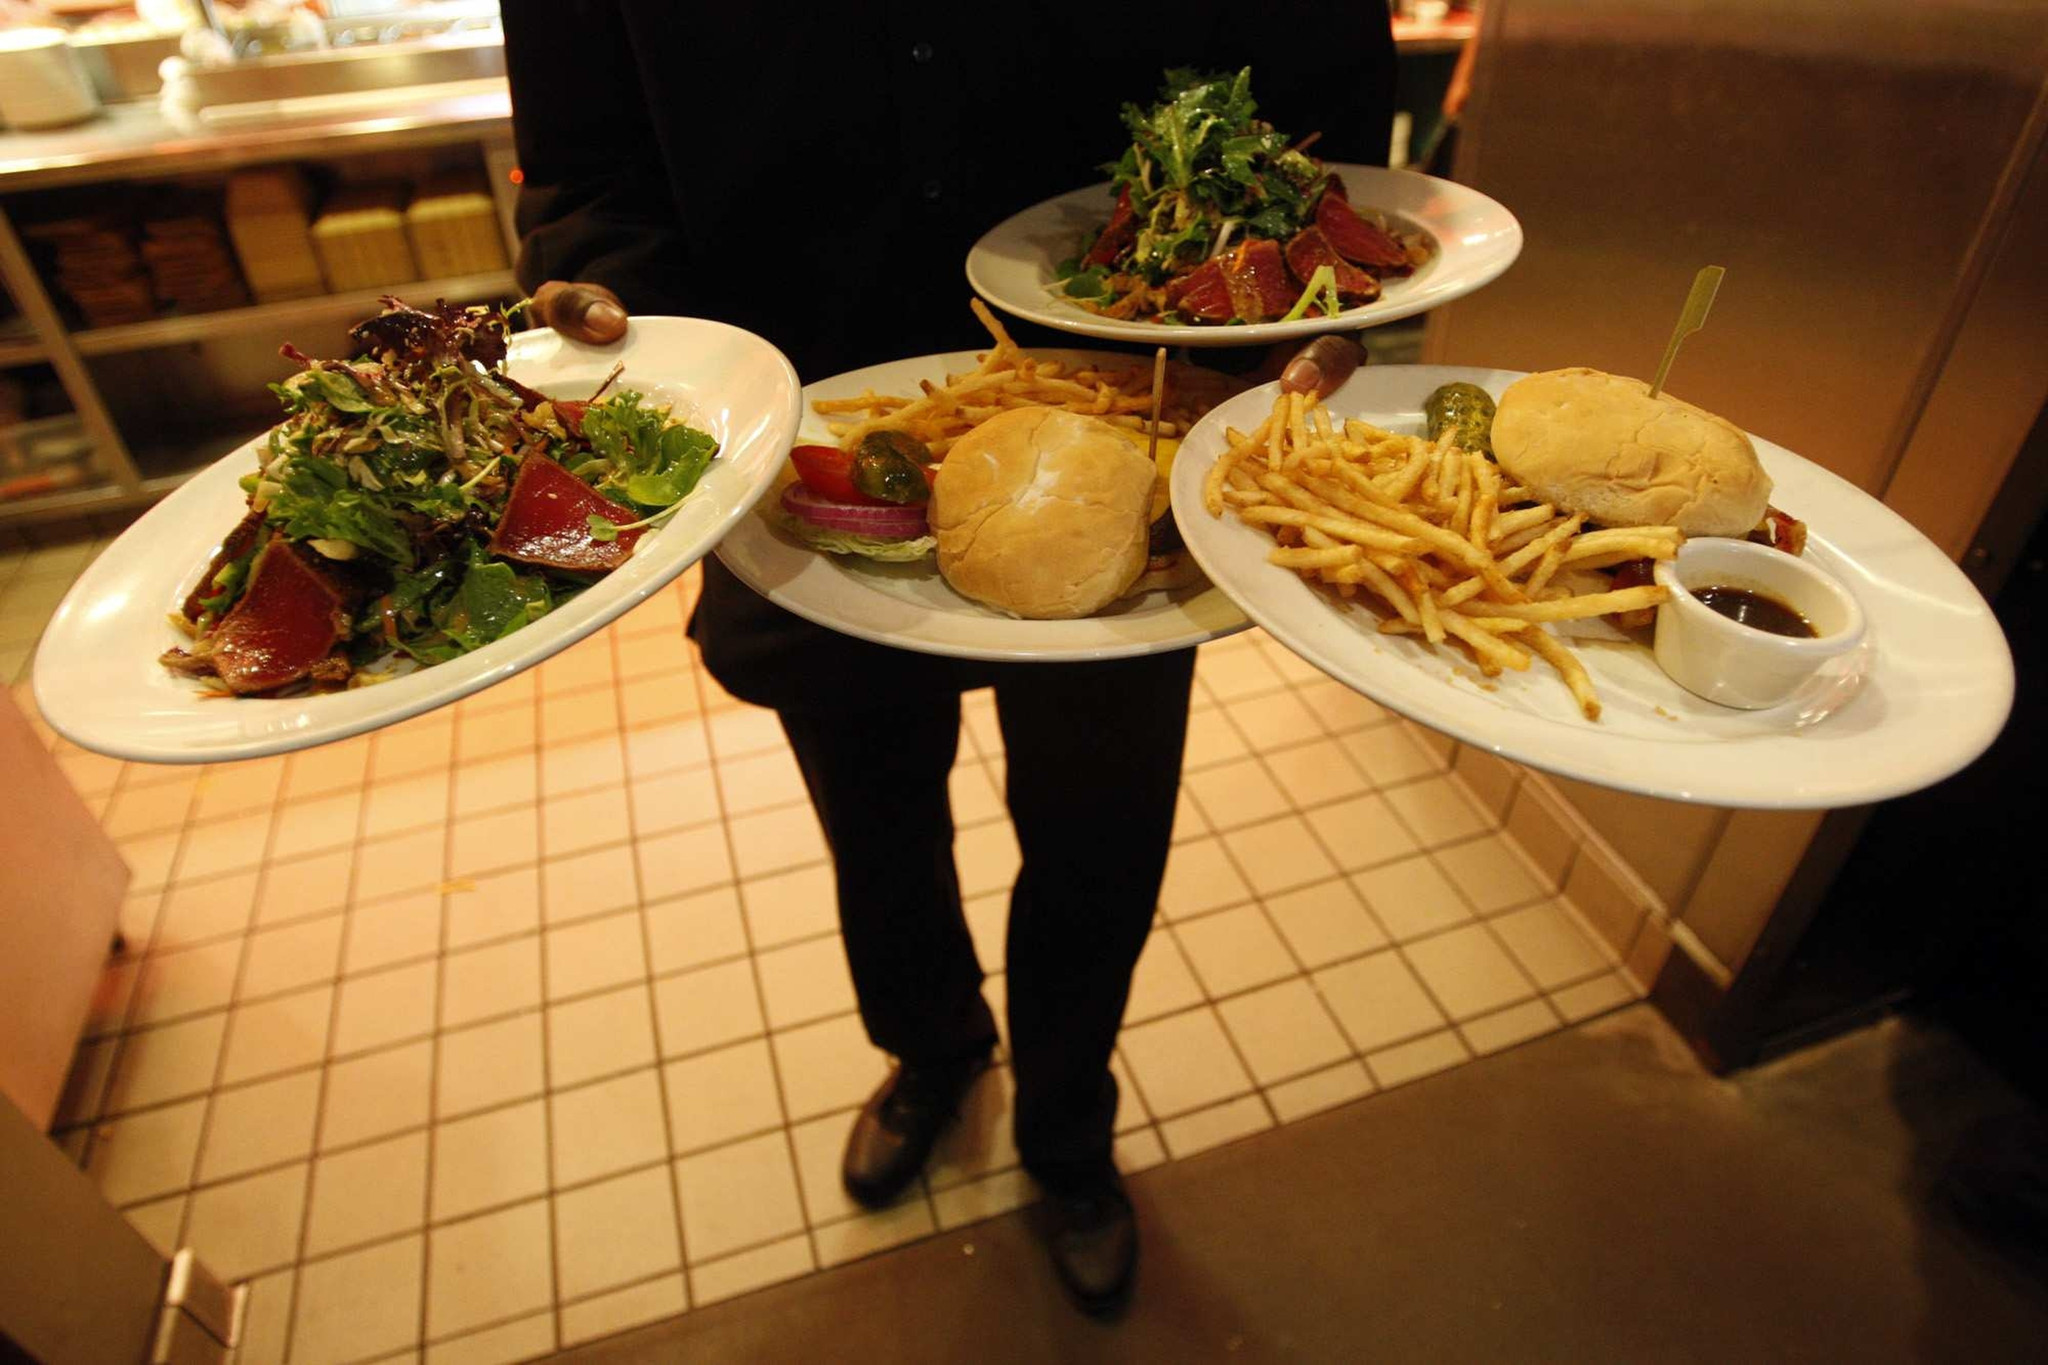 Businesses can't collect tips to share among workers, court says